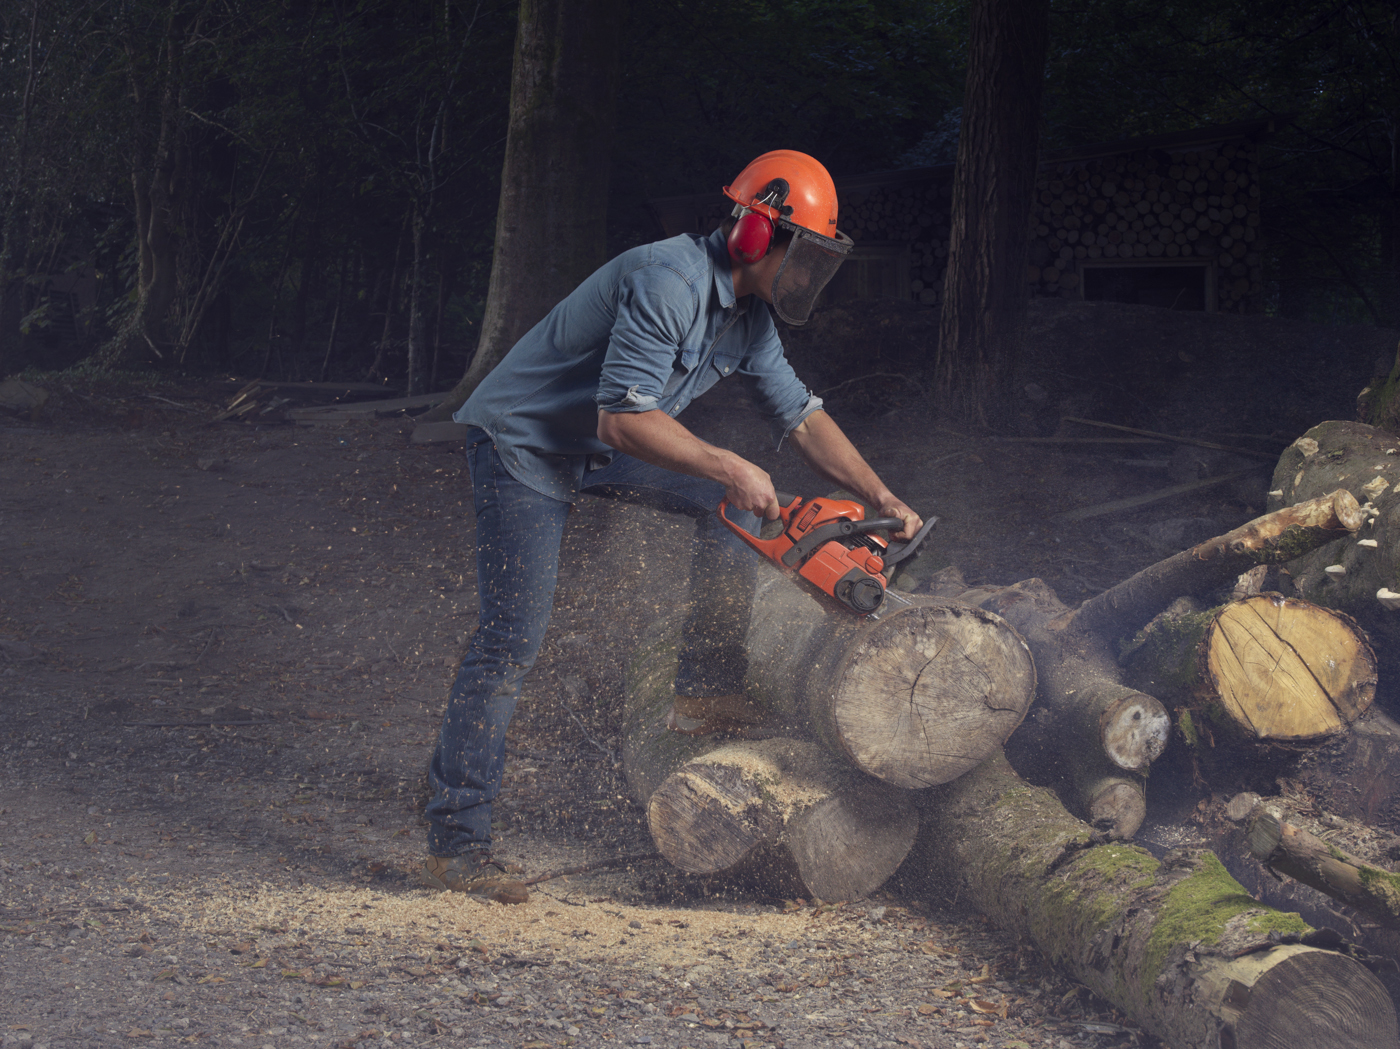 I was one of five European photographers to be picked to shoot a series for the latest 'Live In Levi's' online campaign. We spent two days with Tom Raffield who creates handcrafted wooden lighting and designer furniture from his woodland workshops in Cornwall.Here's more on Tom - http://www.tomraffield.com